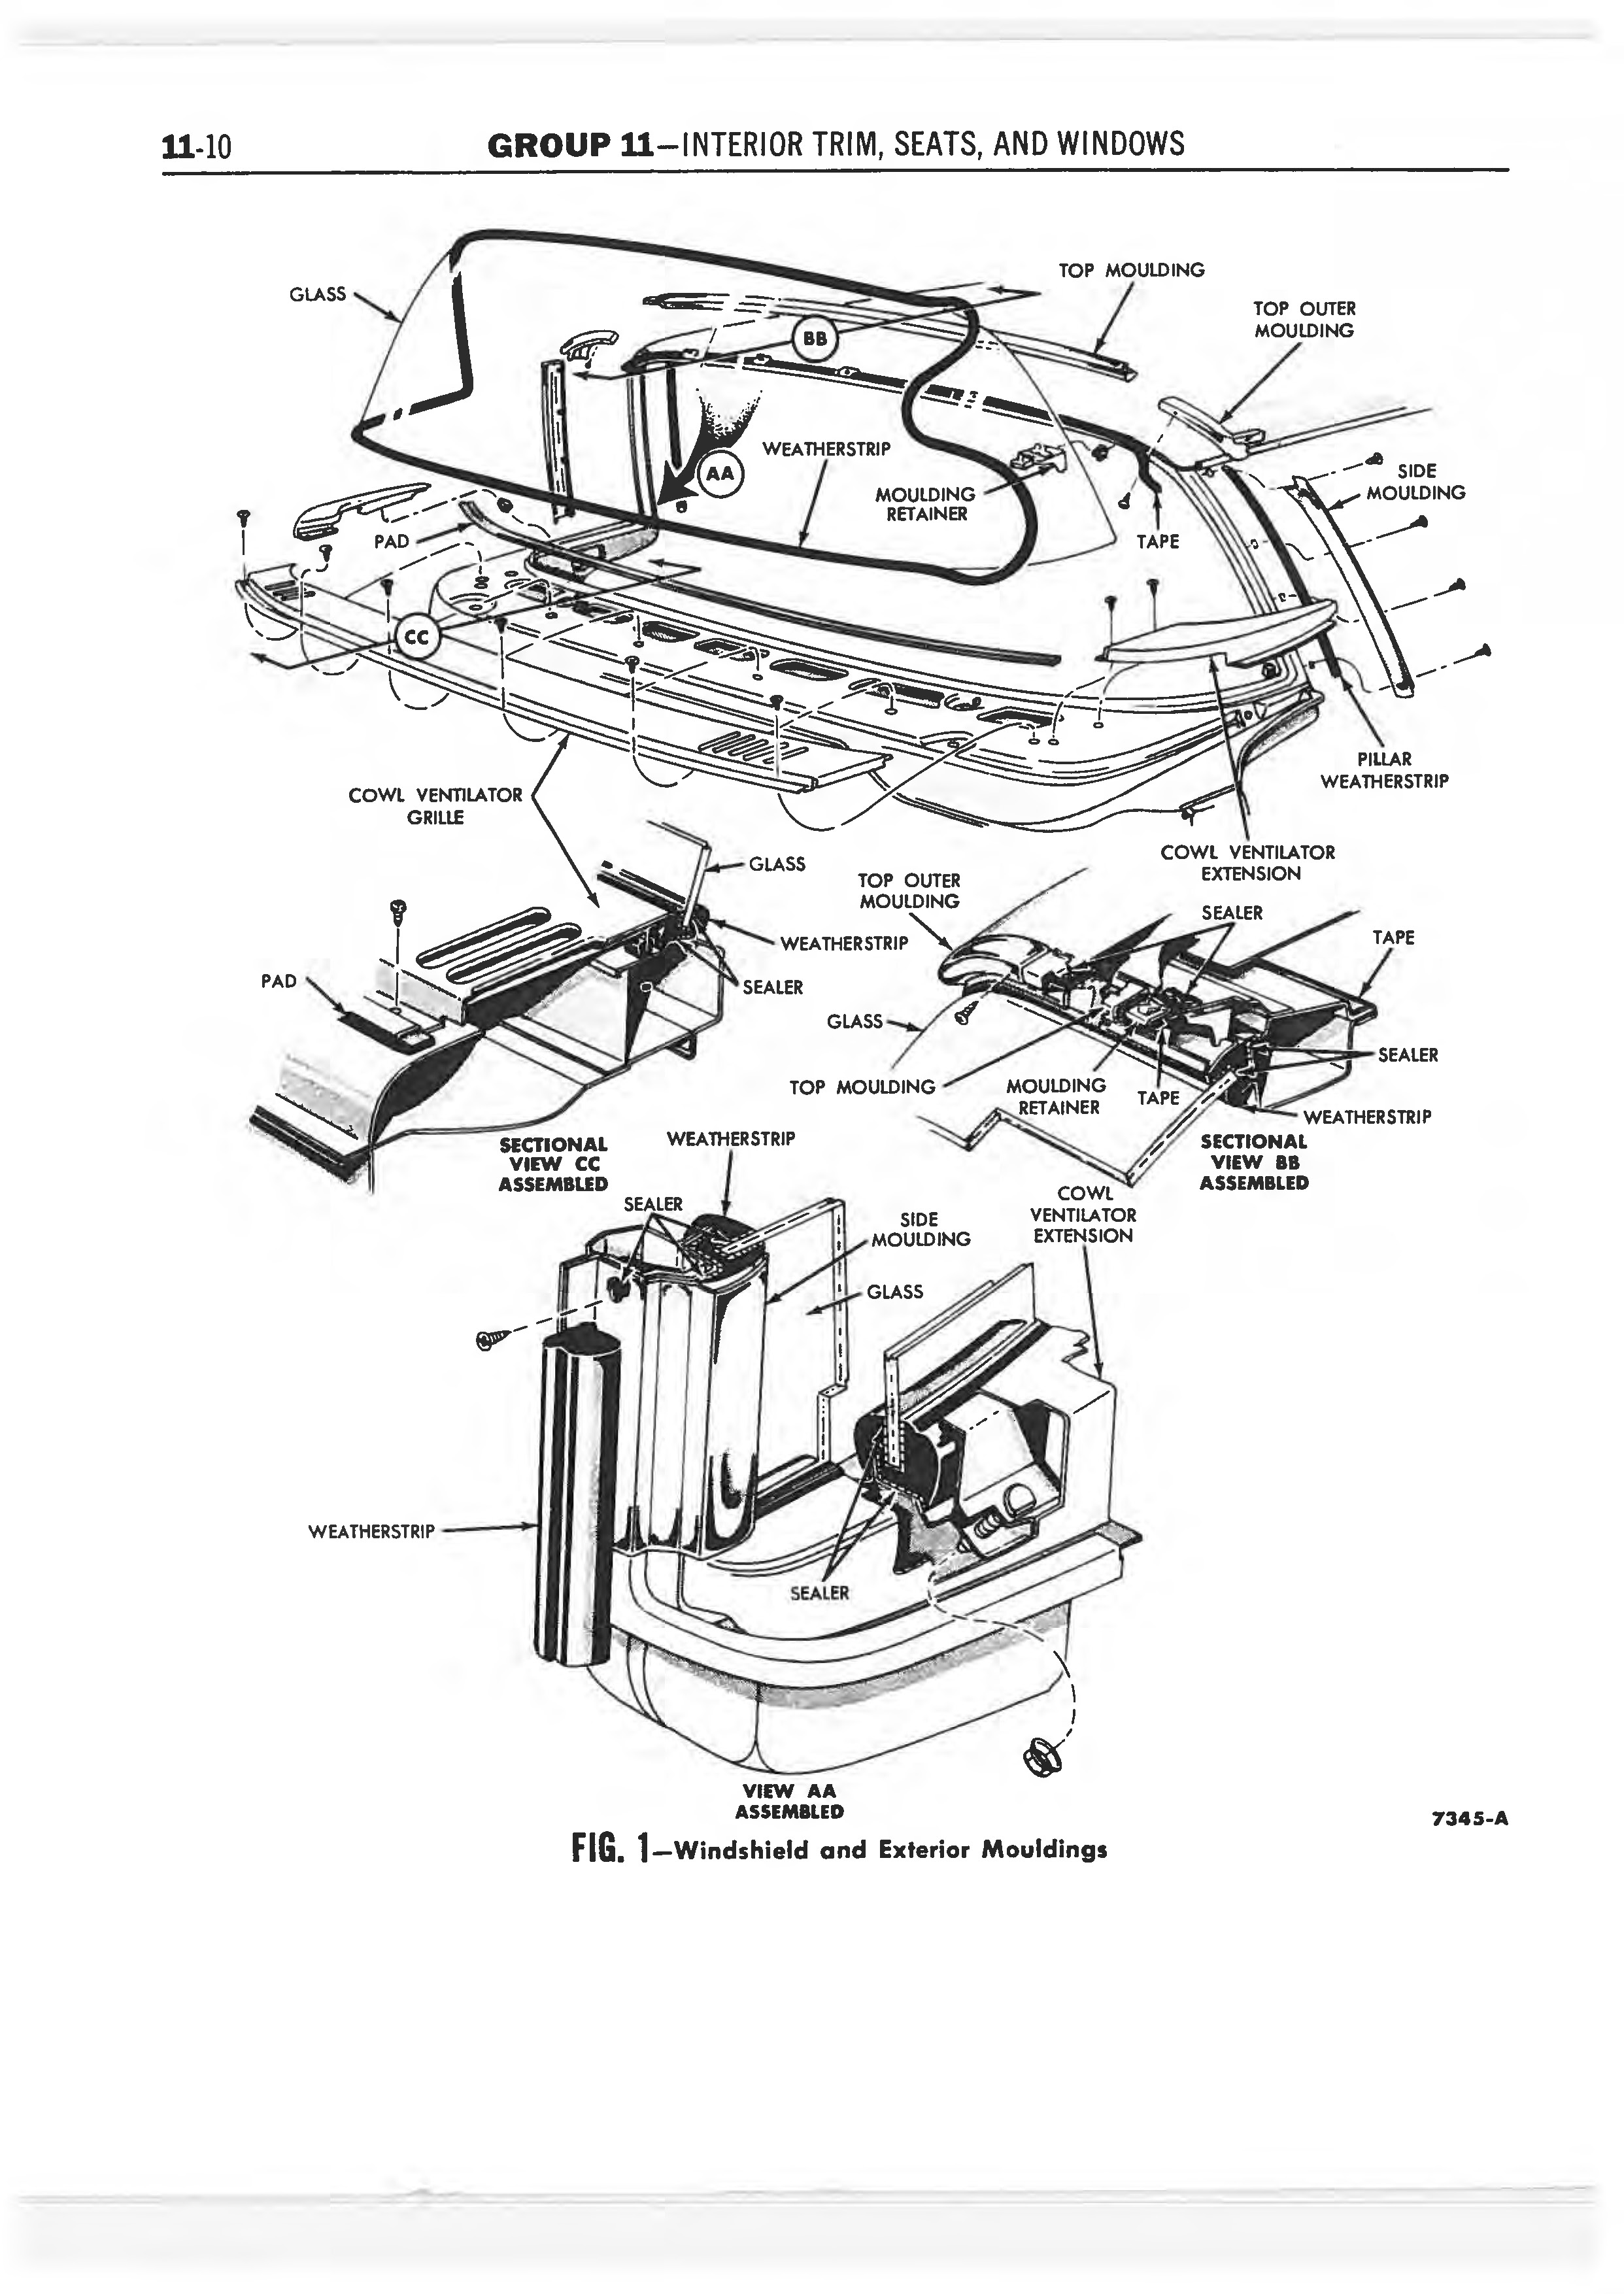 1958 Ford Thunderbird Shop Manual page 323 of 360